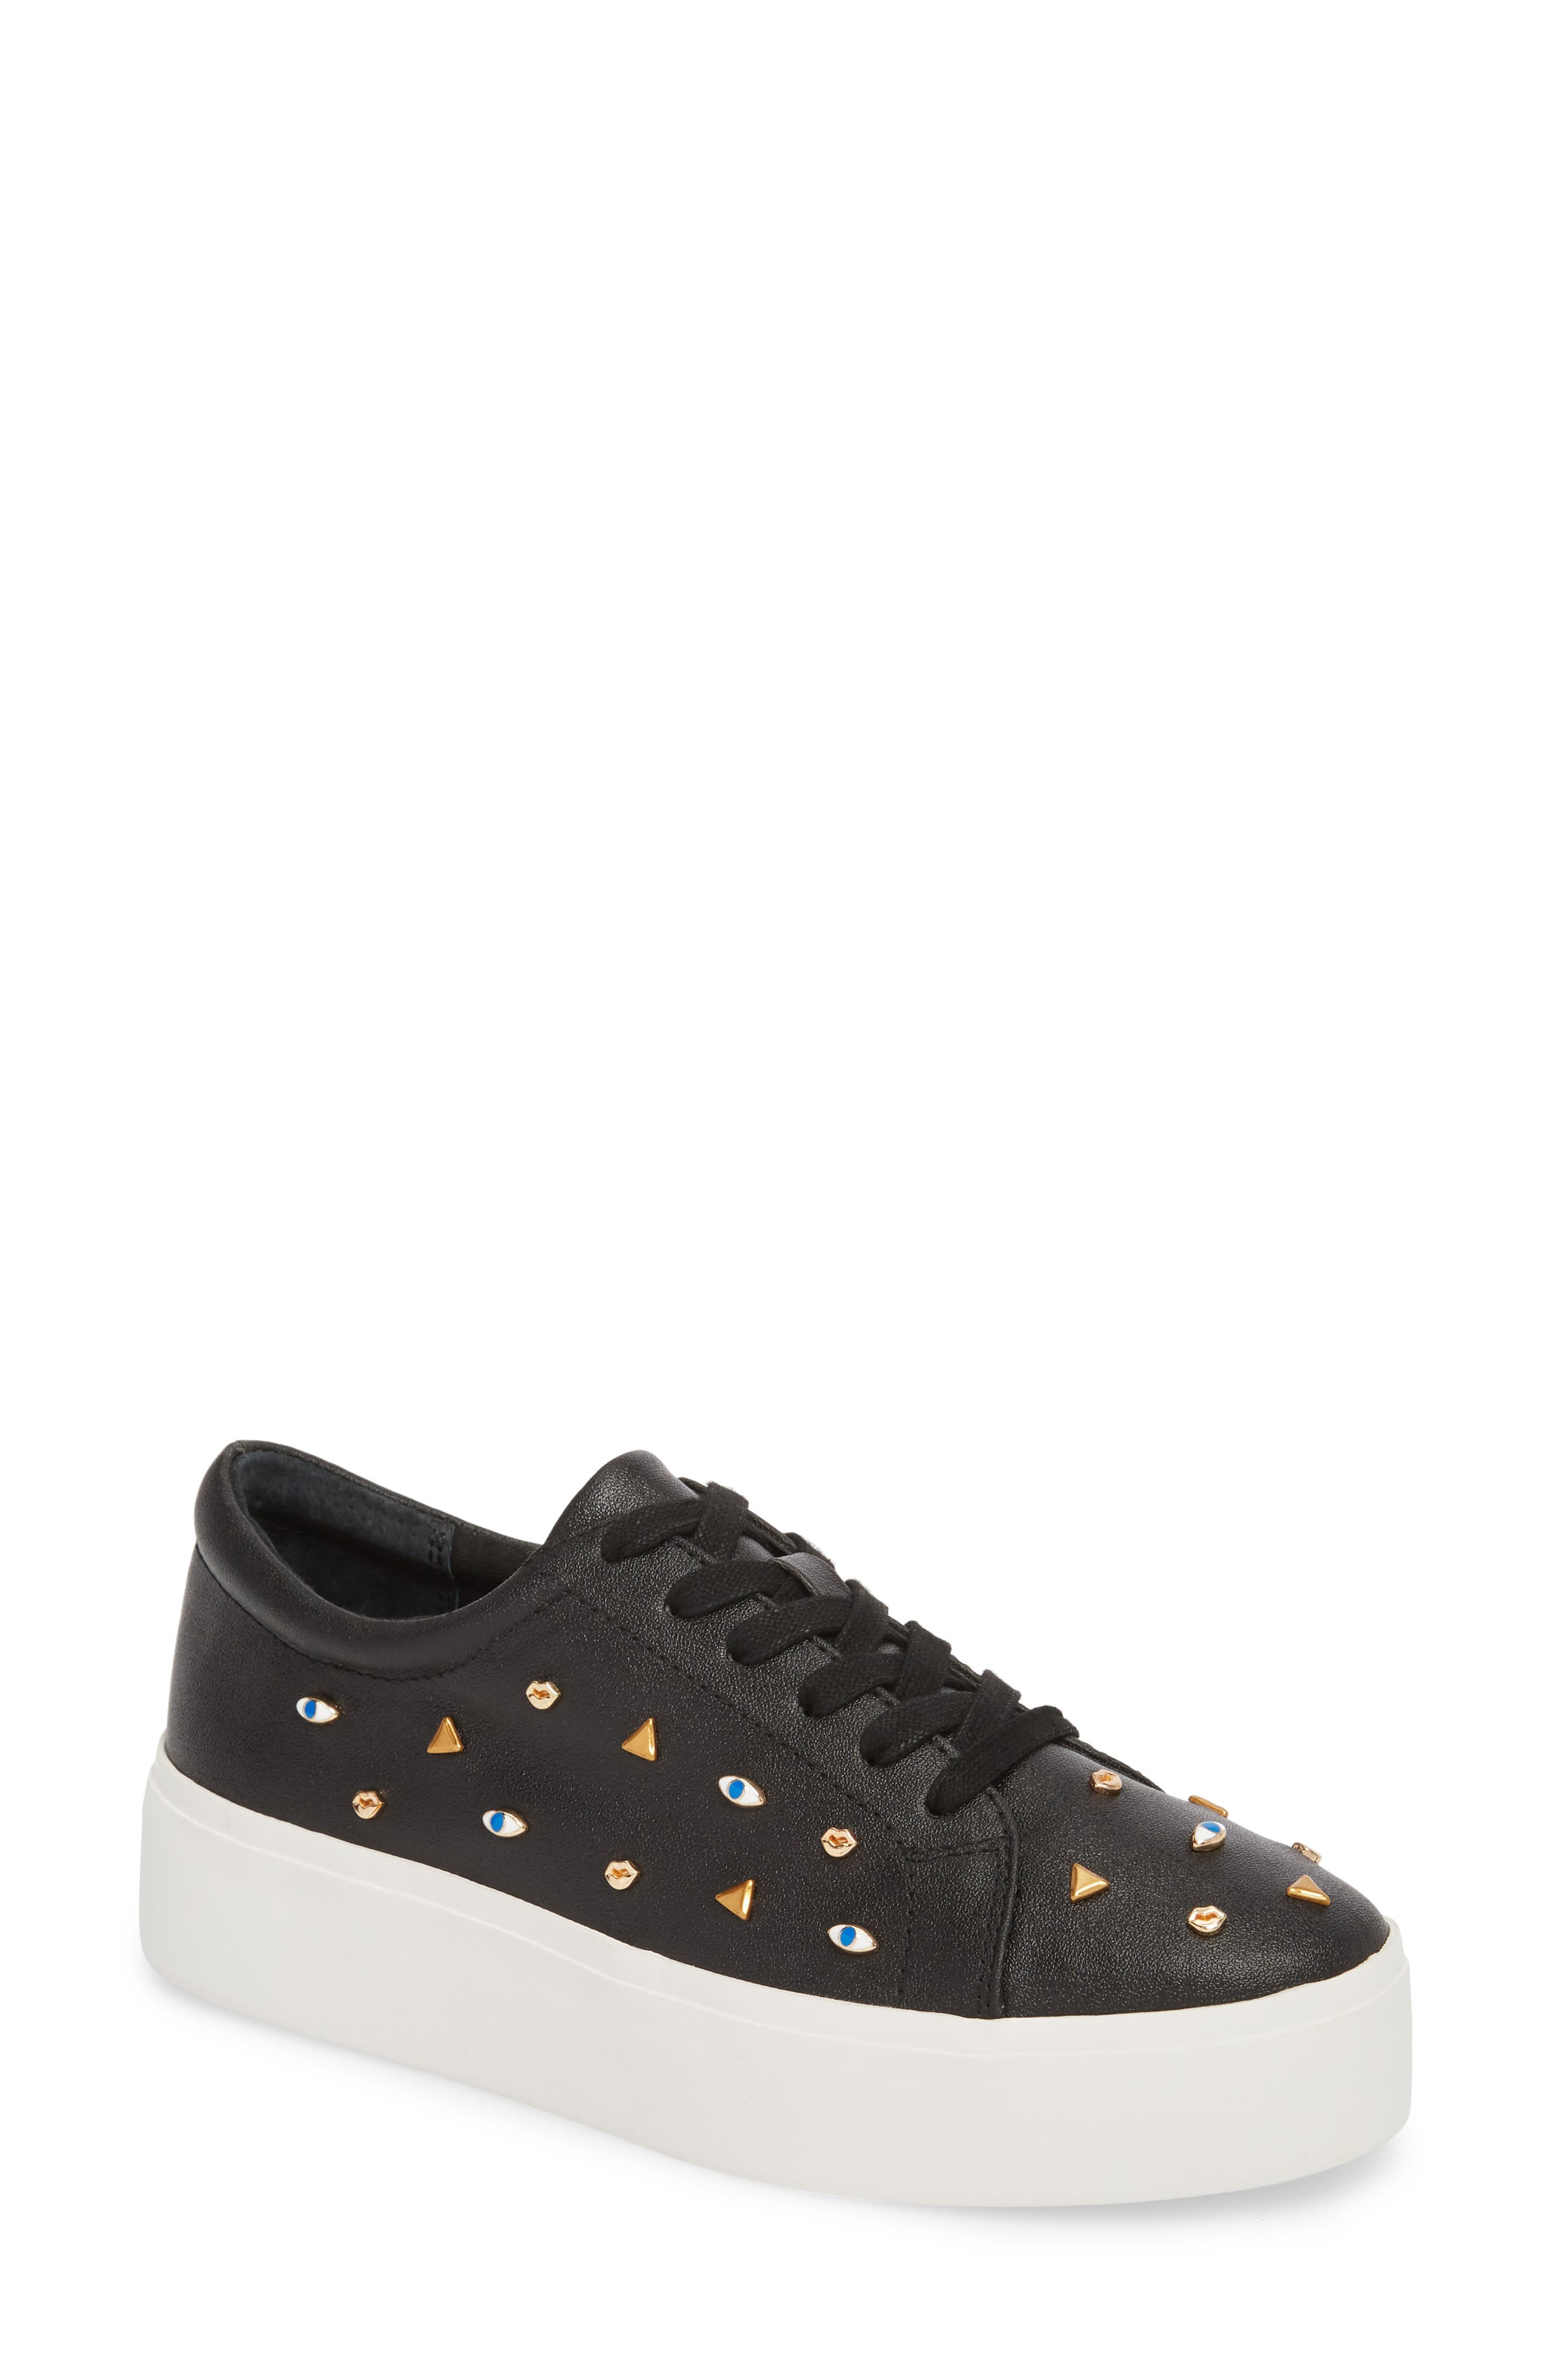 KATY PERRY THE DYLAN EMBELLISHED PLATFORM SNEAKER